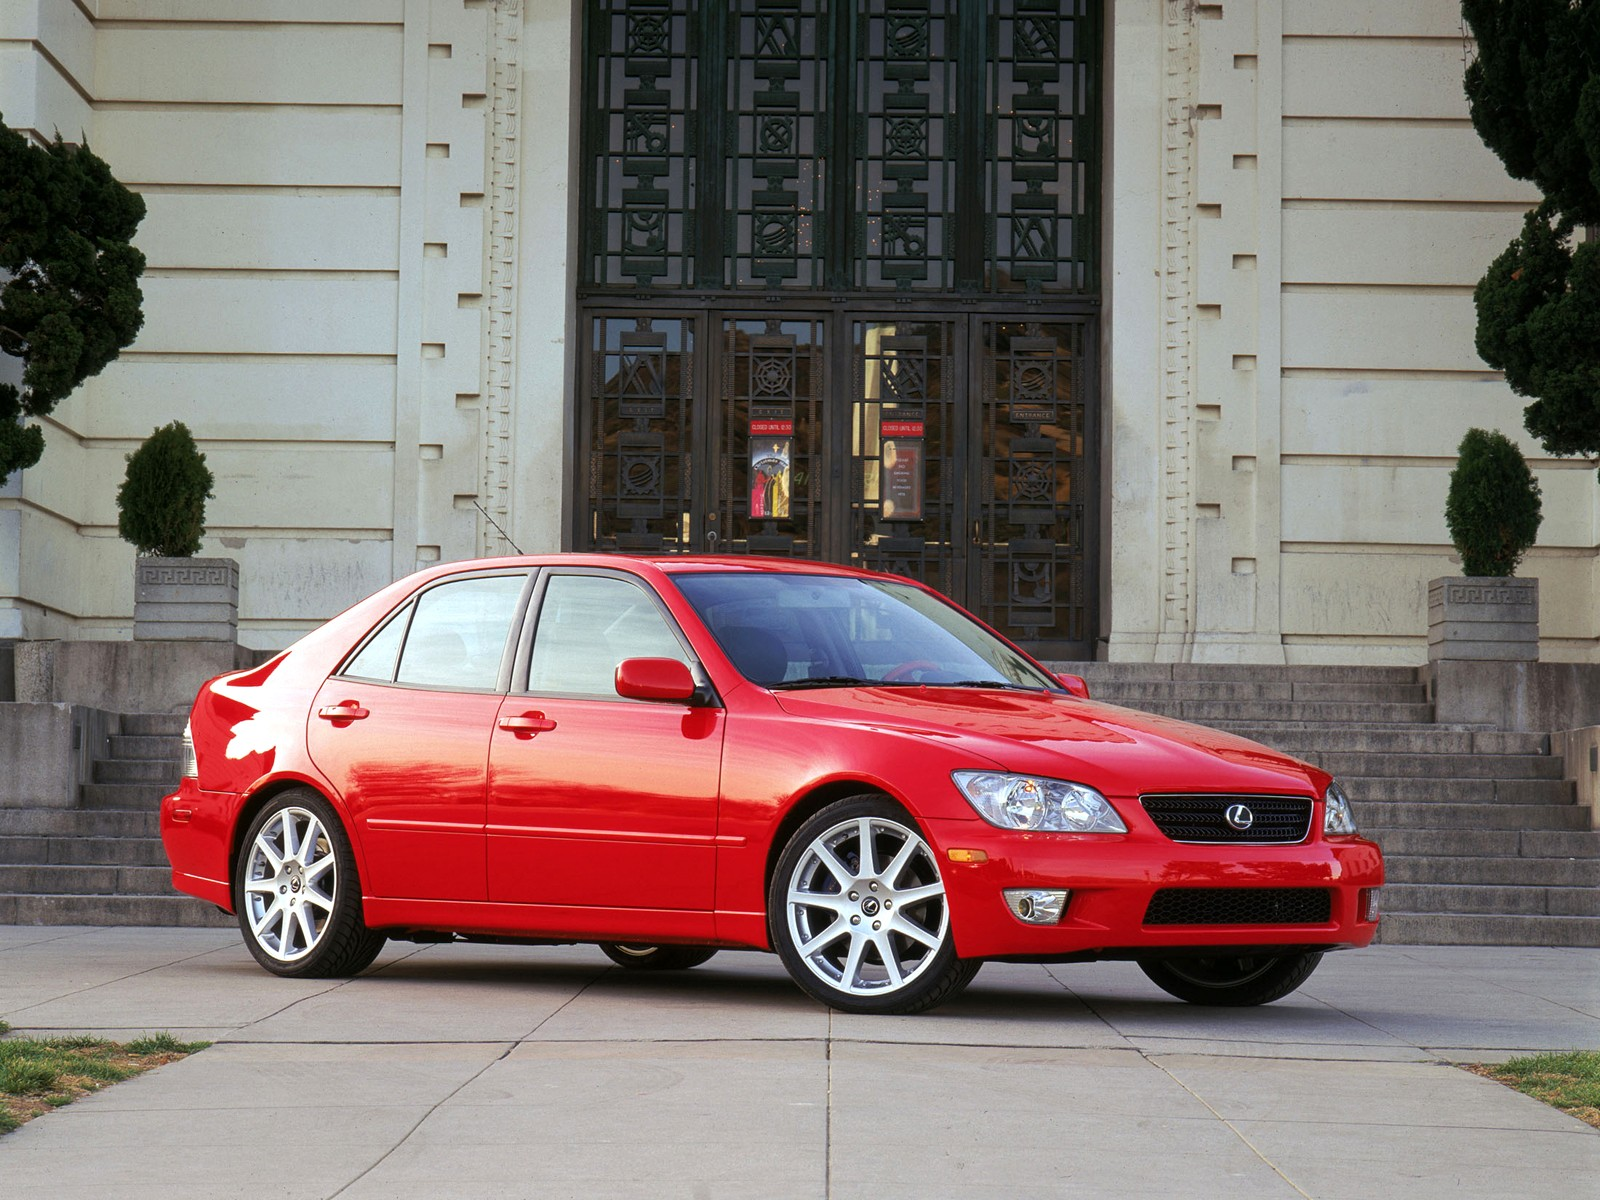 Lexus IS 300 photos Gallery with 59 pics CarsBase